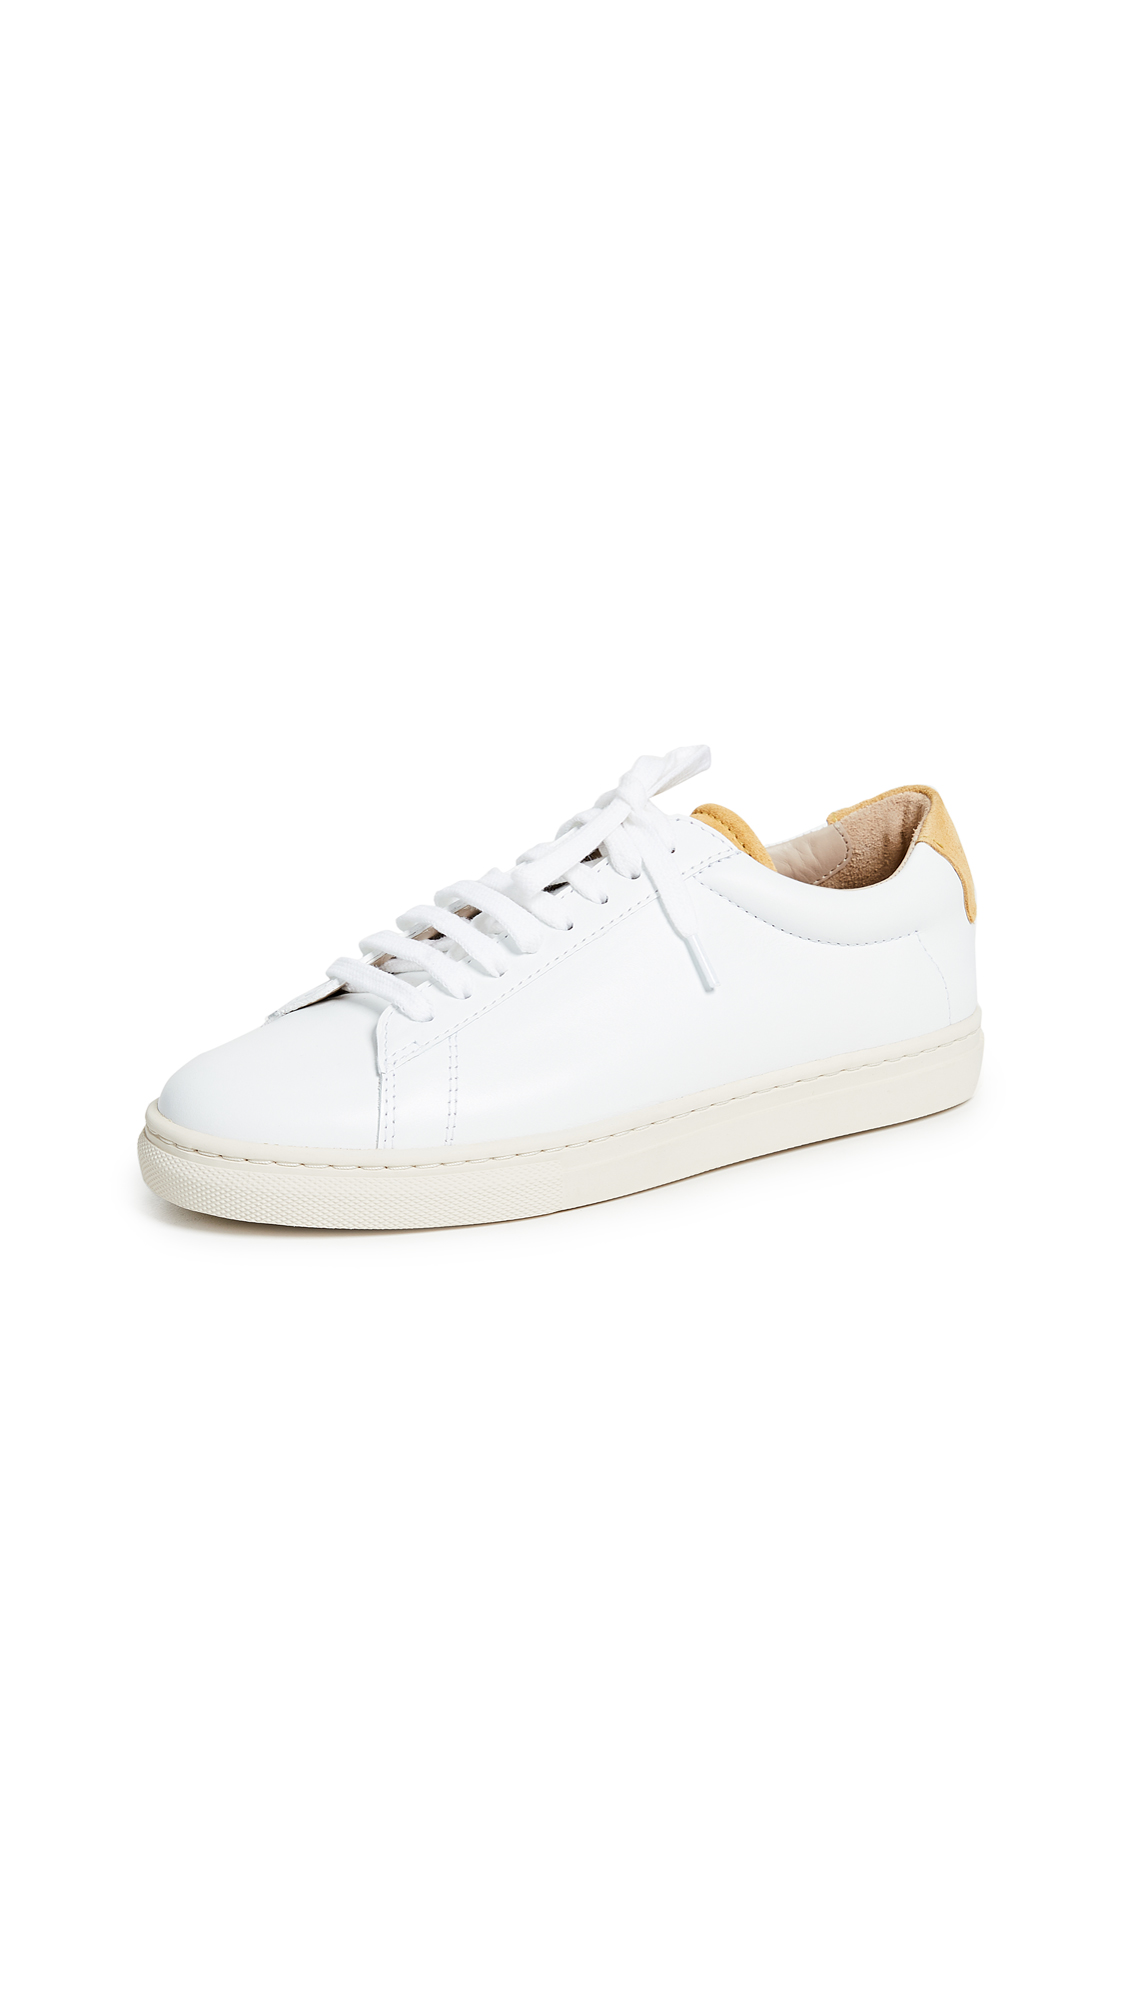 Zespa Lace Up Sneakers - White/Mustard